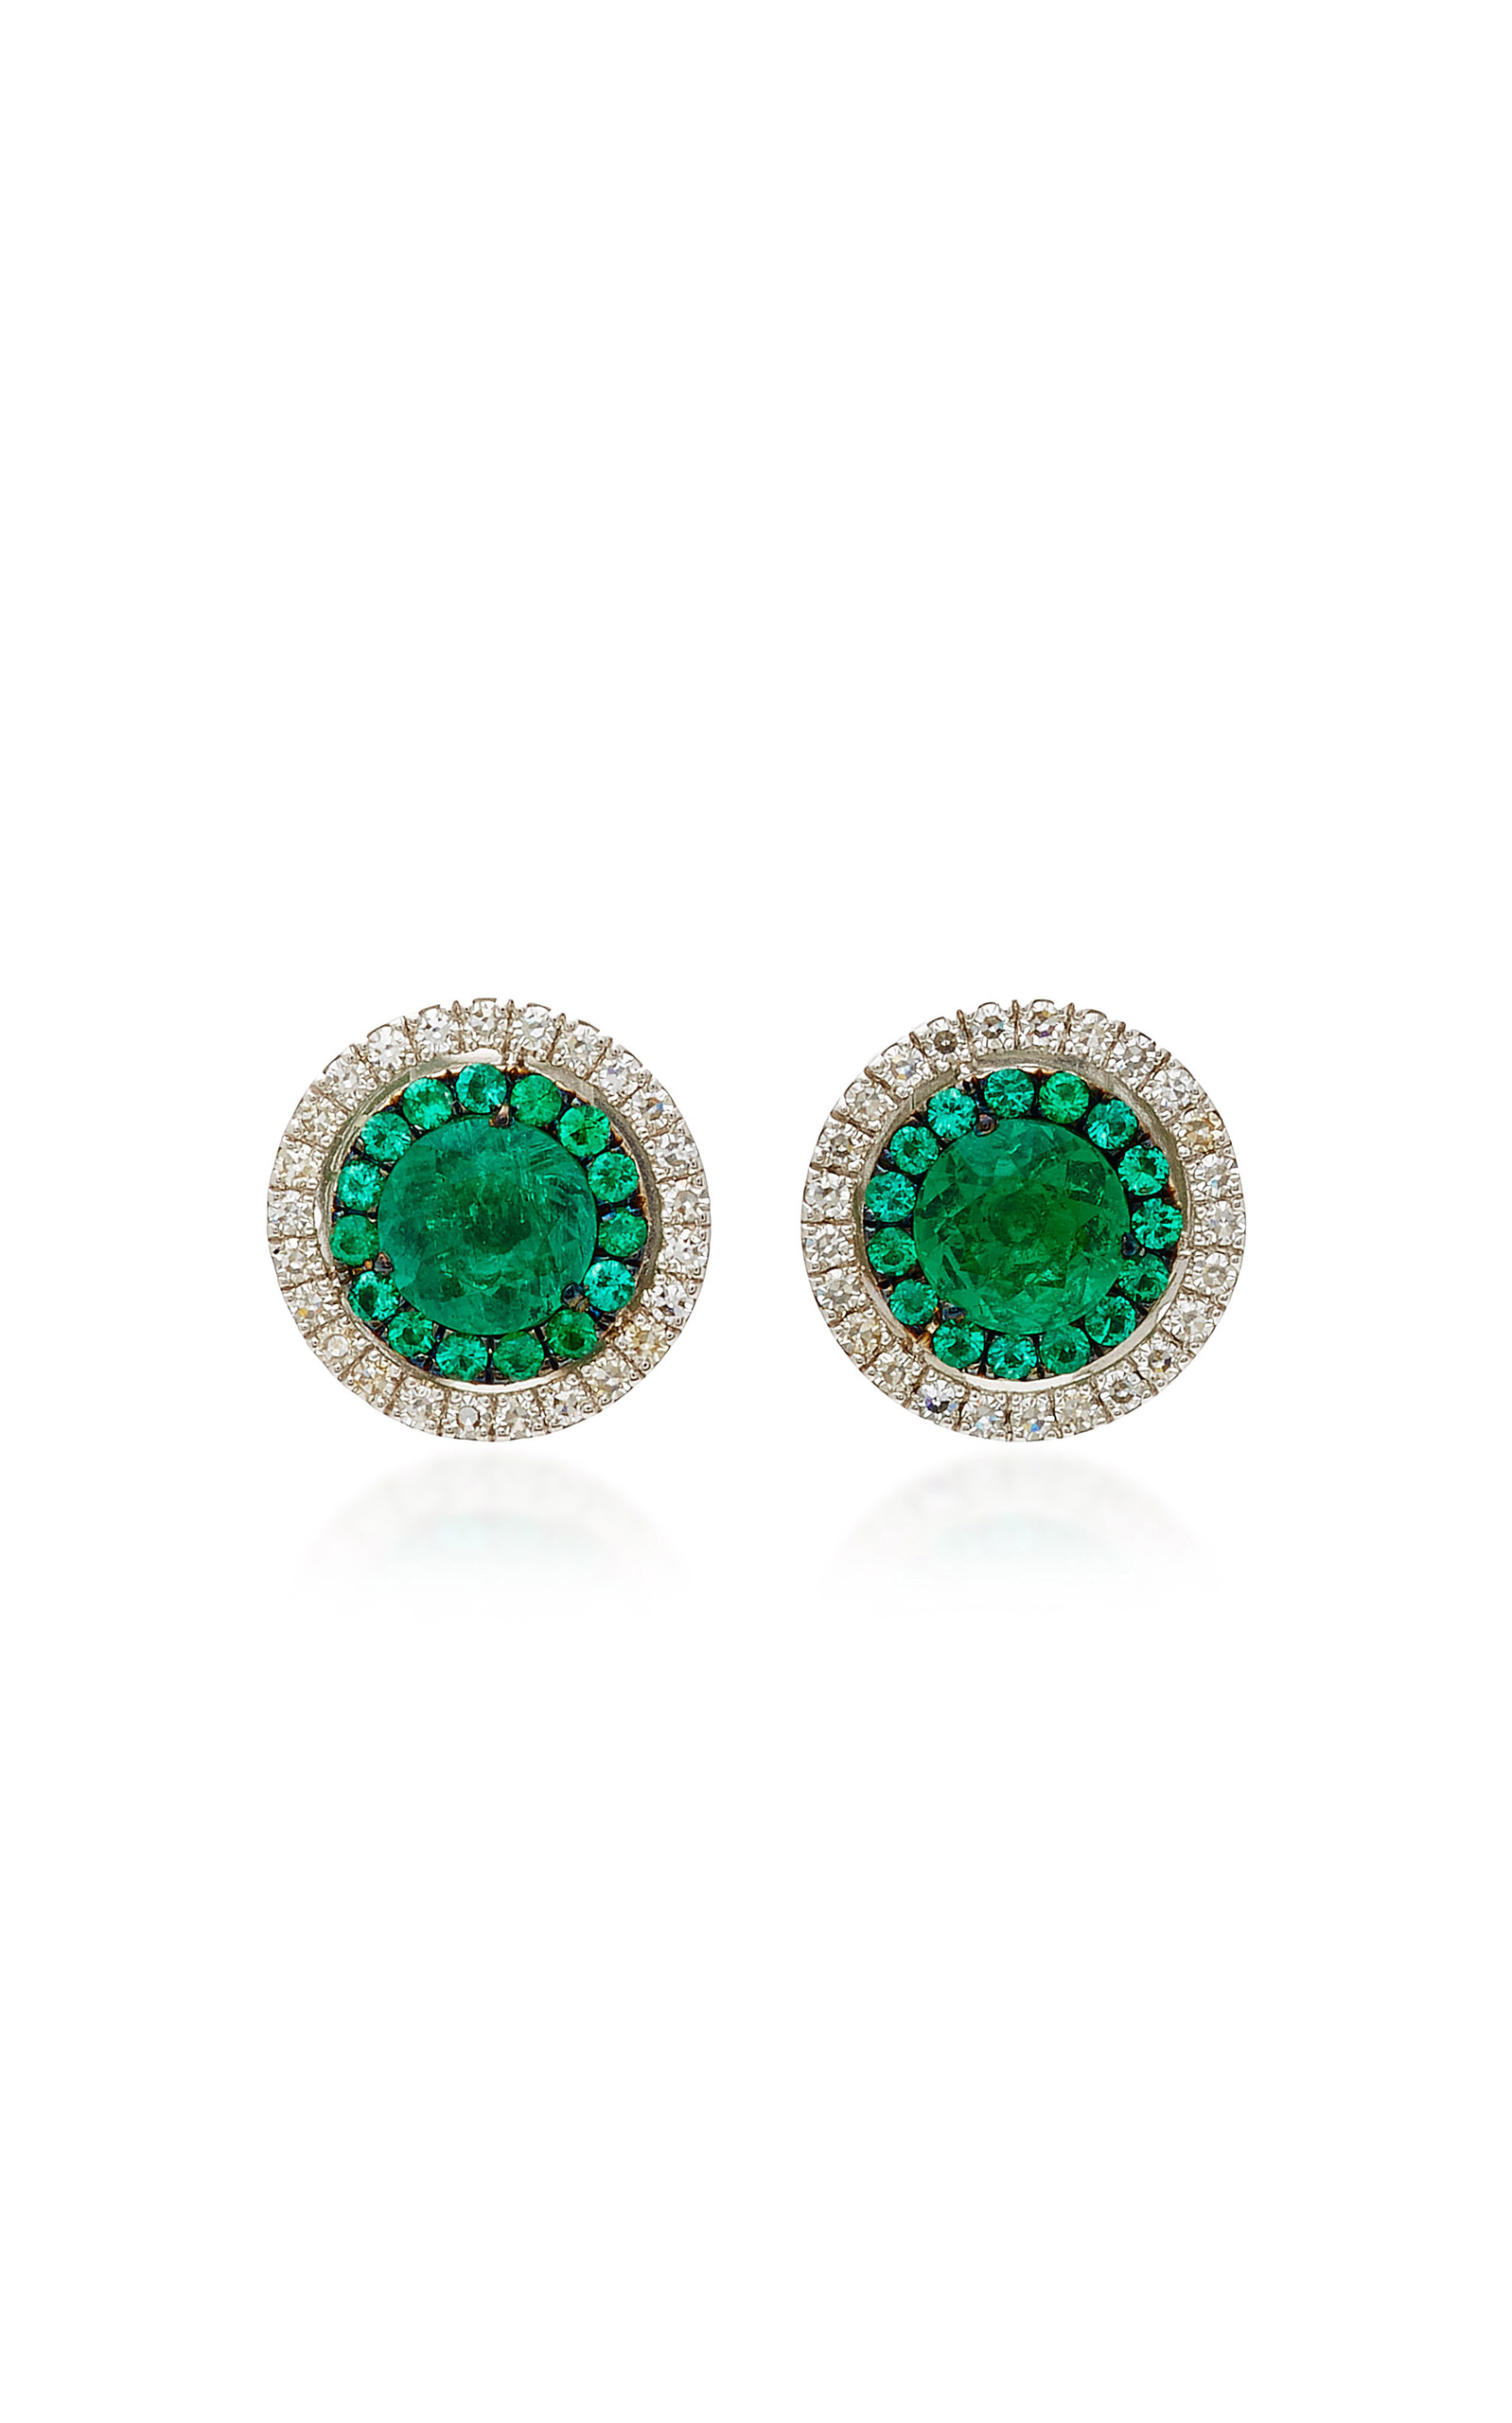 sv green light emerald mini orhangen drop jewelry turquoise mde earrings caroline lt stud svedbom butik